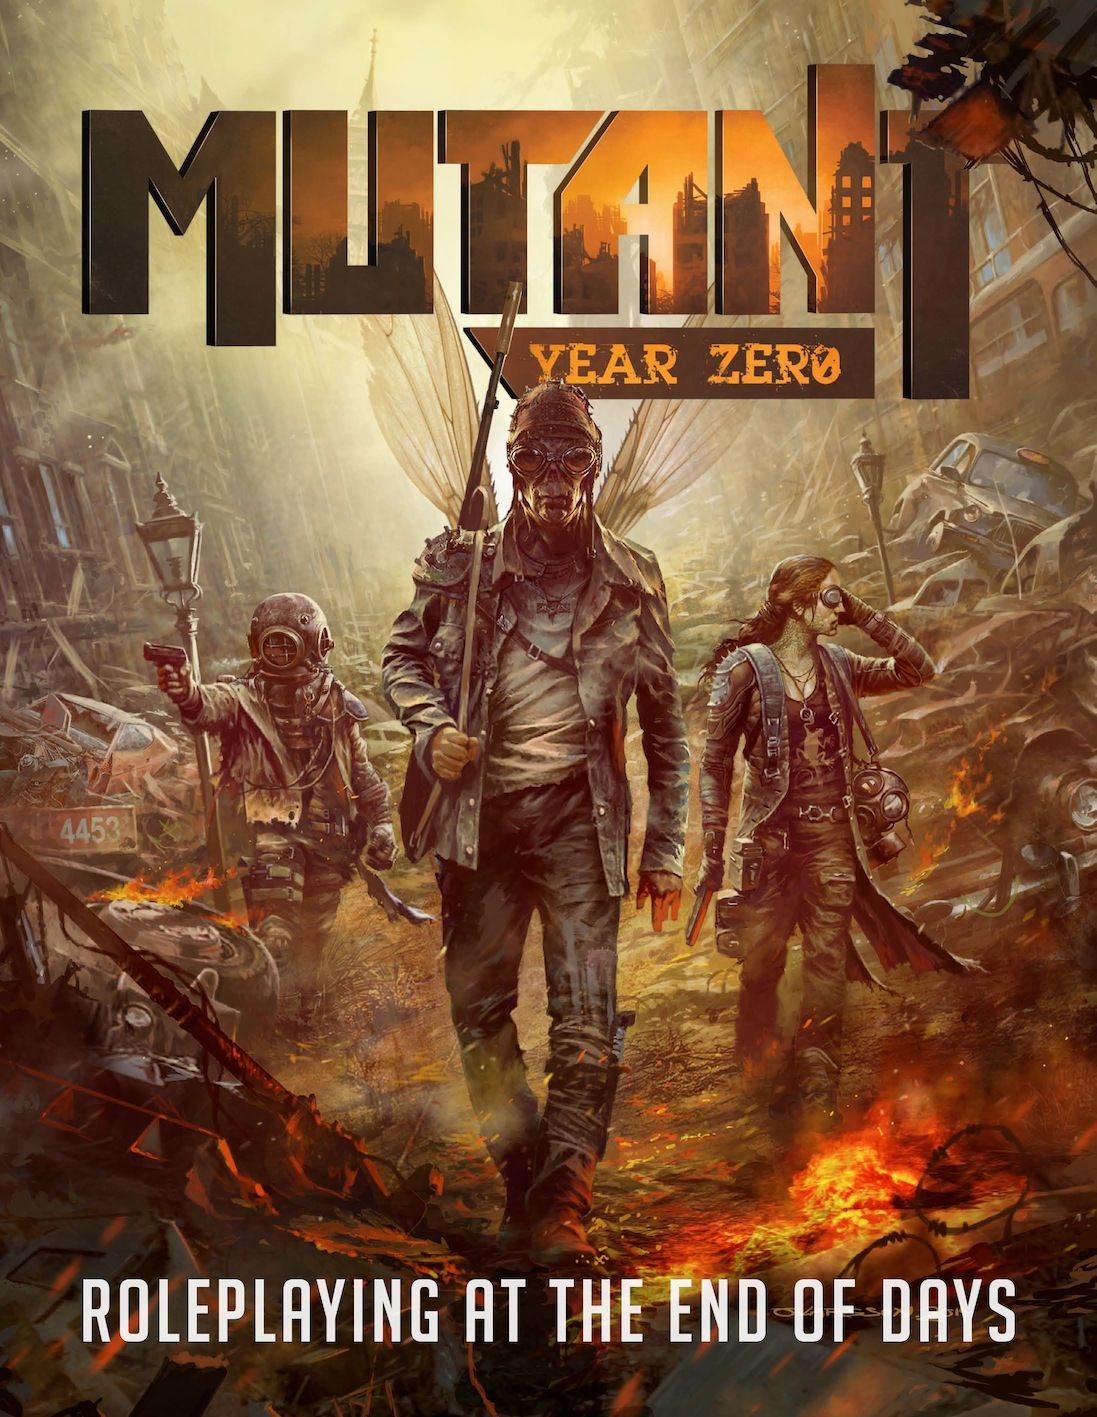 Mutant: Year Zero (Image: Modiphius Entertainment/Fria Ligan AB)